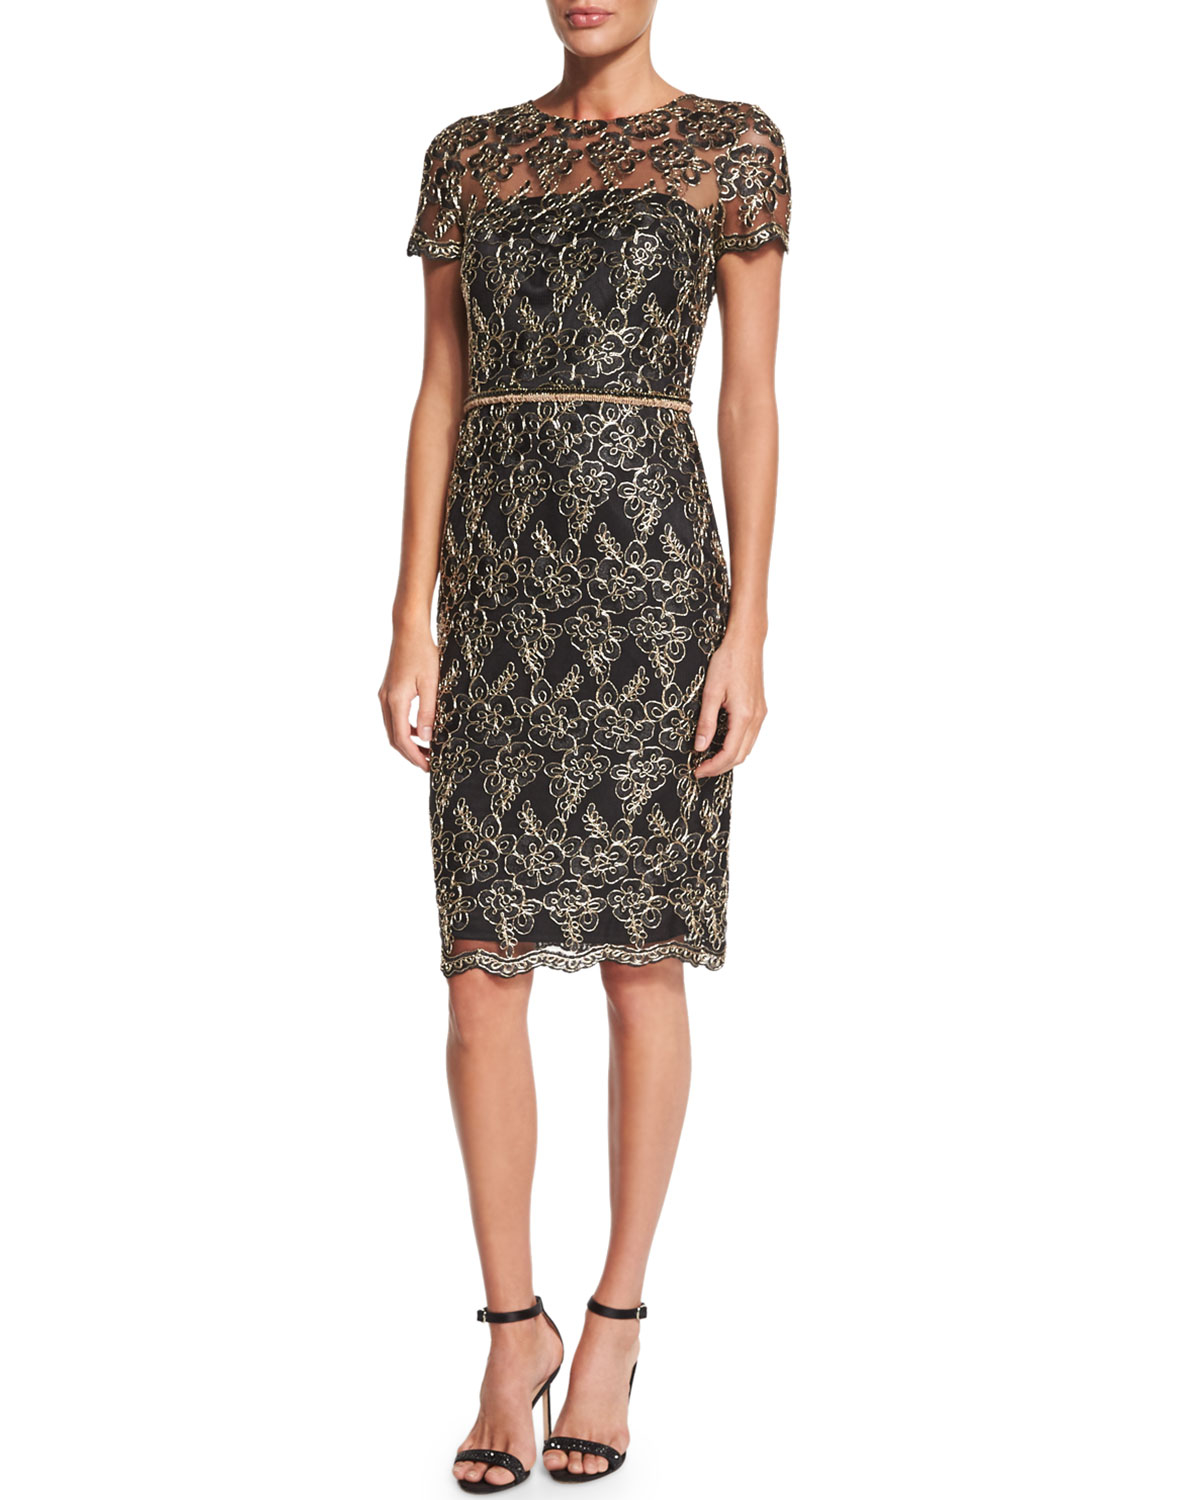 f5fa6b38992 Lyst - David Meister Short-sleeve Embroidered Cocktail Dress in Black